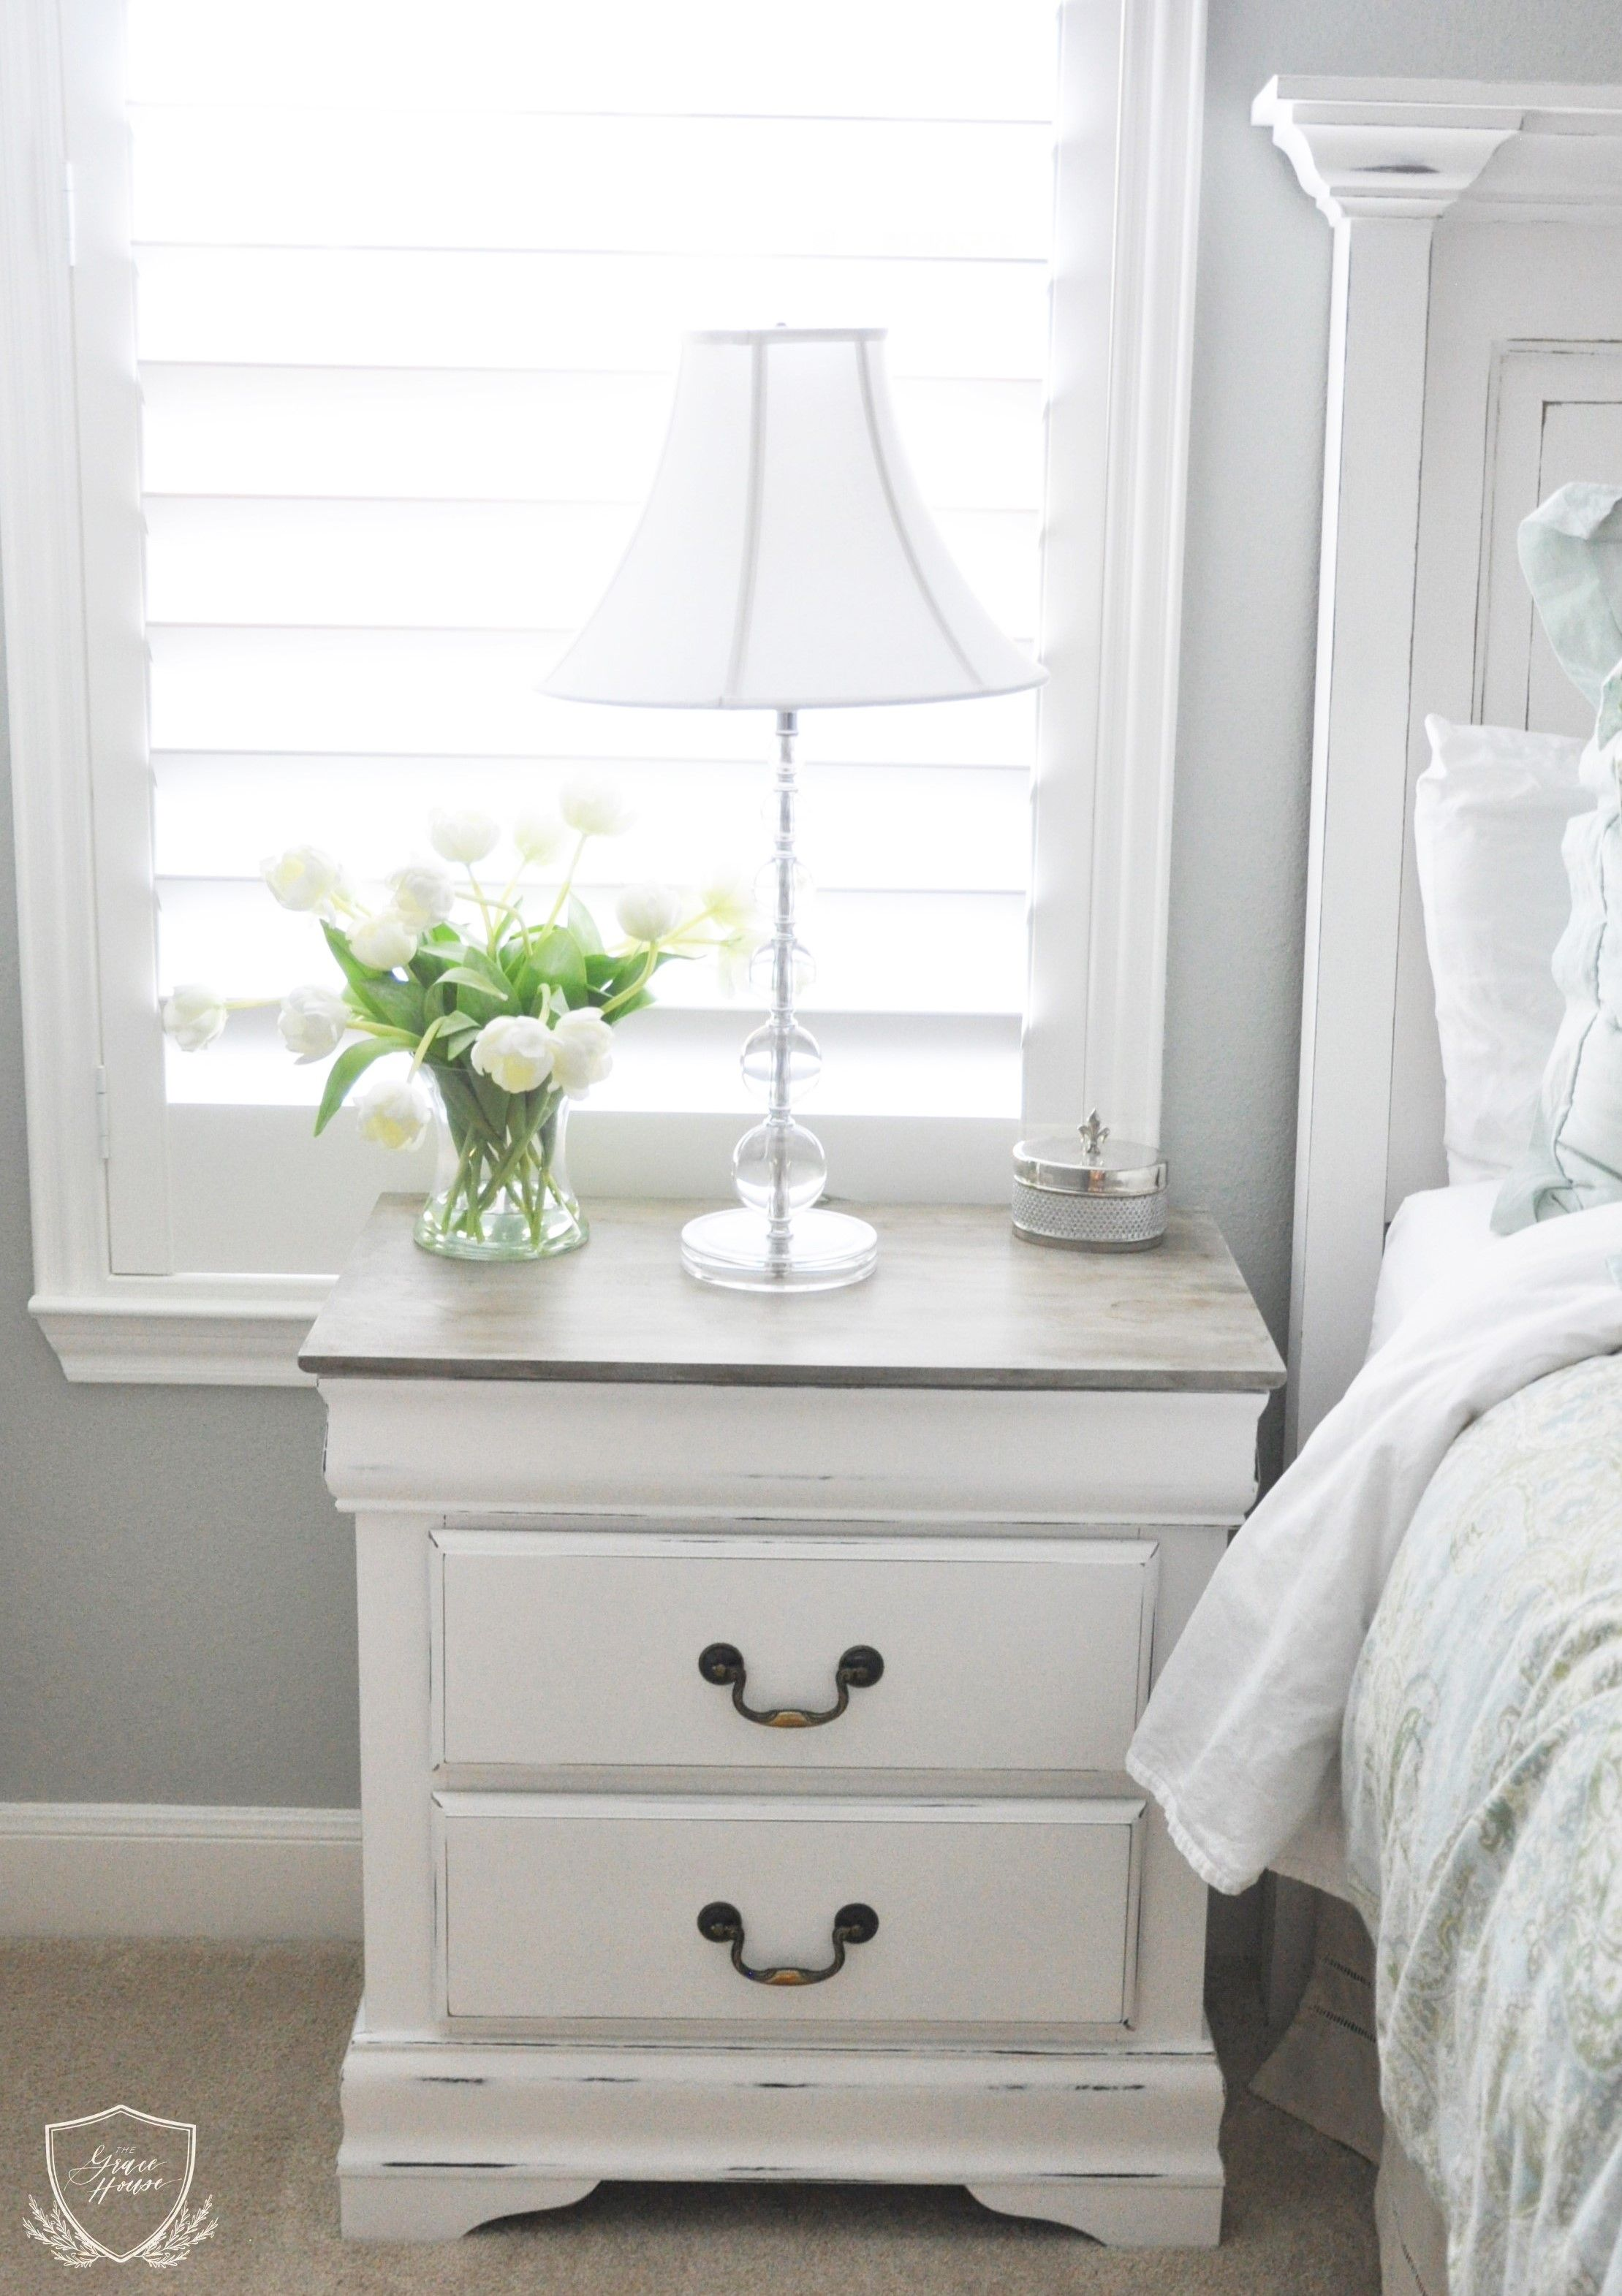 Nightstand Chalk Paint Tutorial Chalk Paint Tutorial Chalk Paint And Nightstands